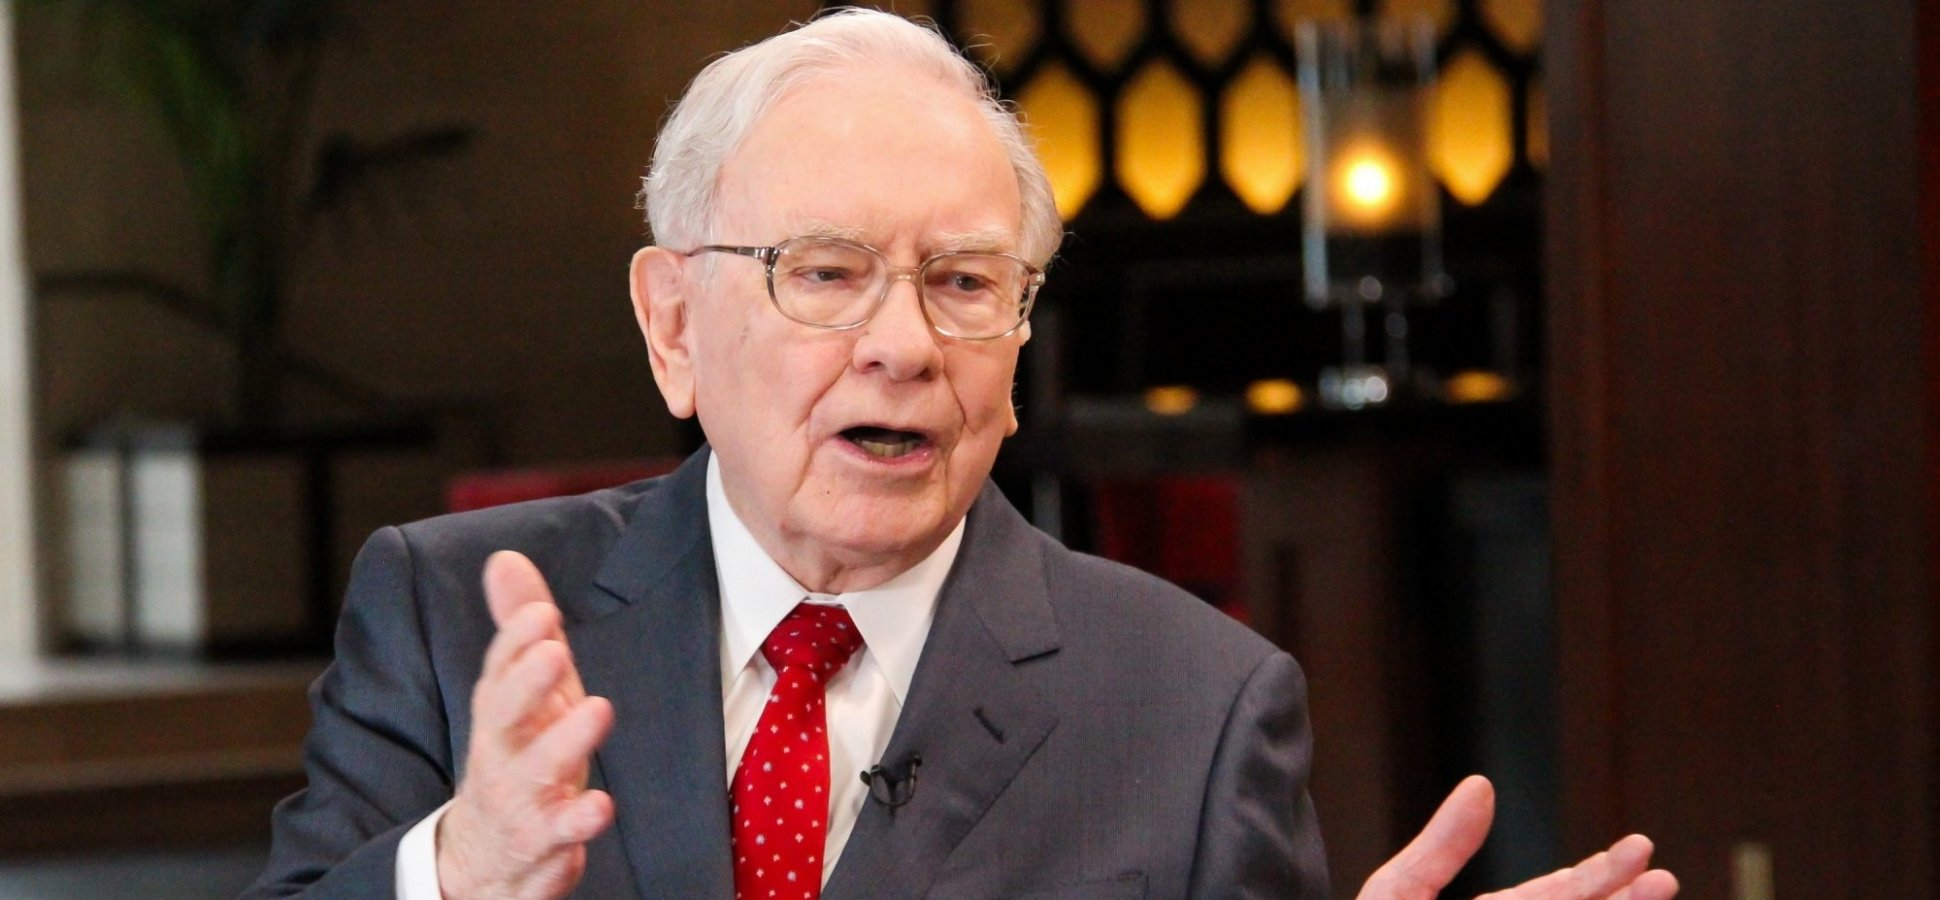 Warren Buffett Says These Simple Habits That Most of Us Ignore Separate Successful People From Everyone Else